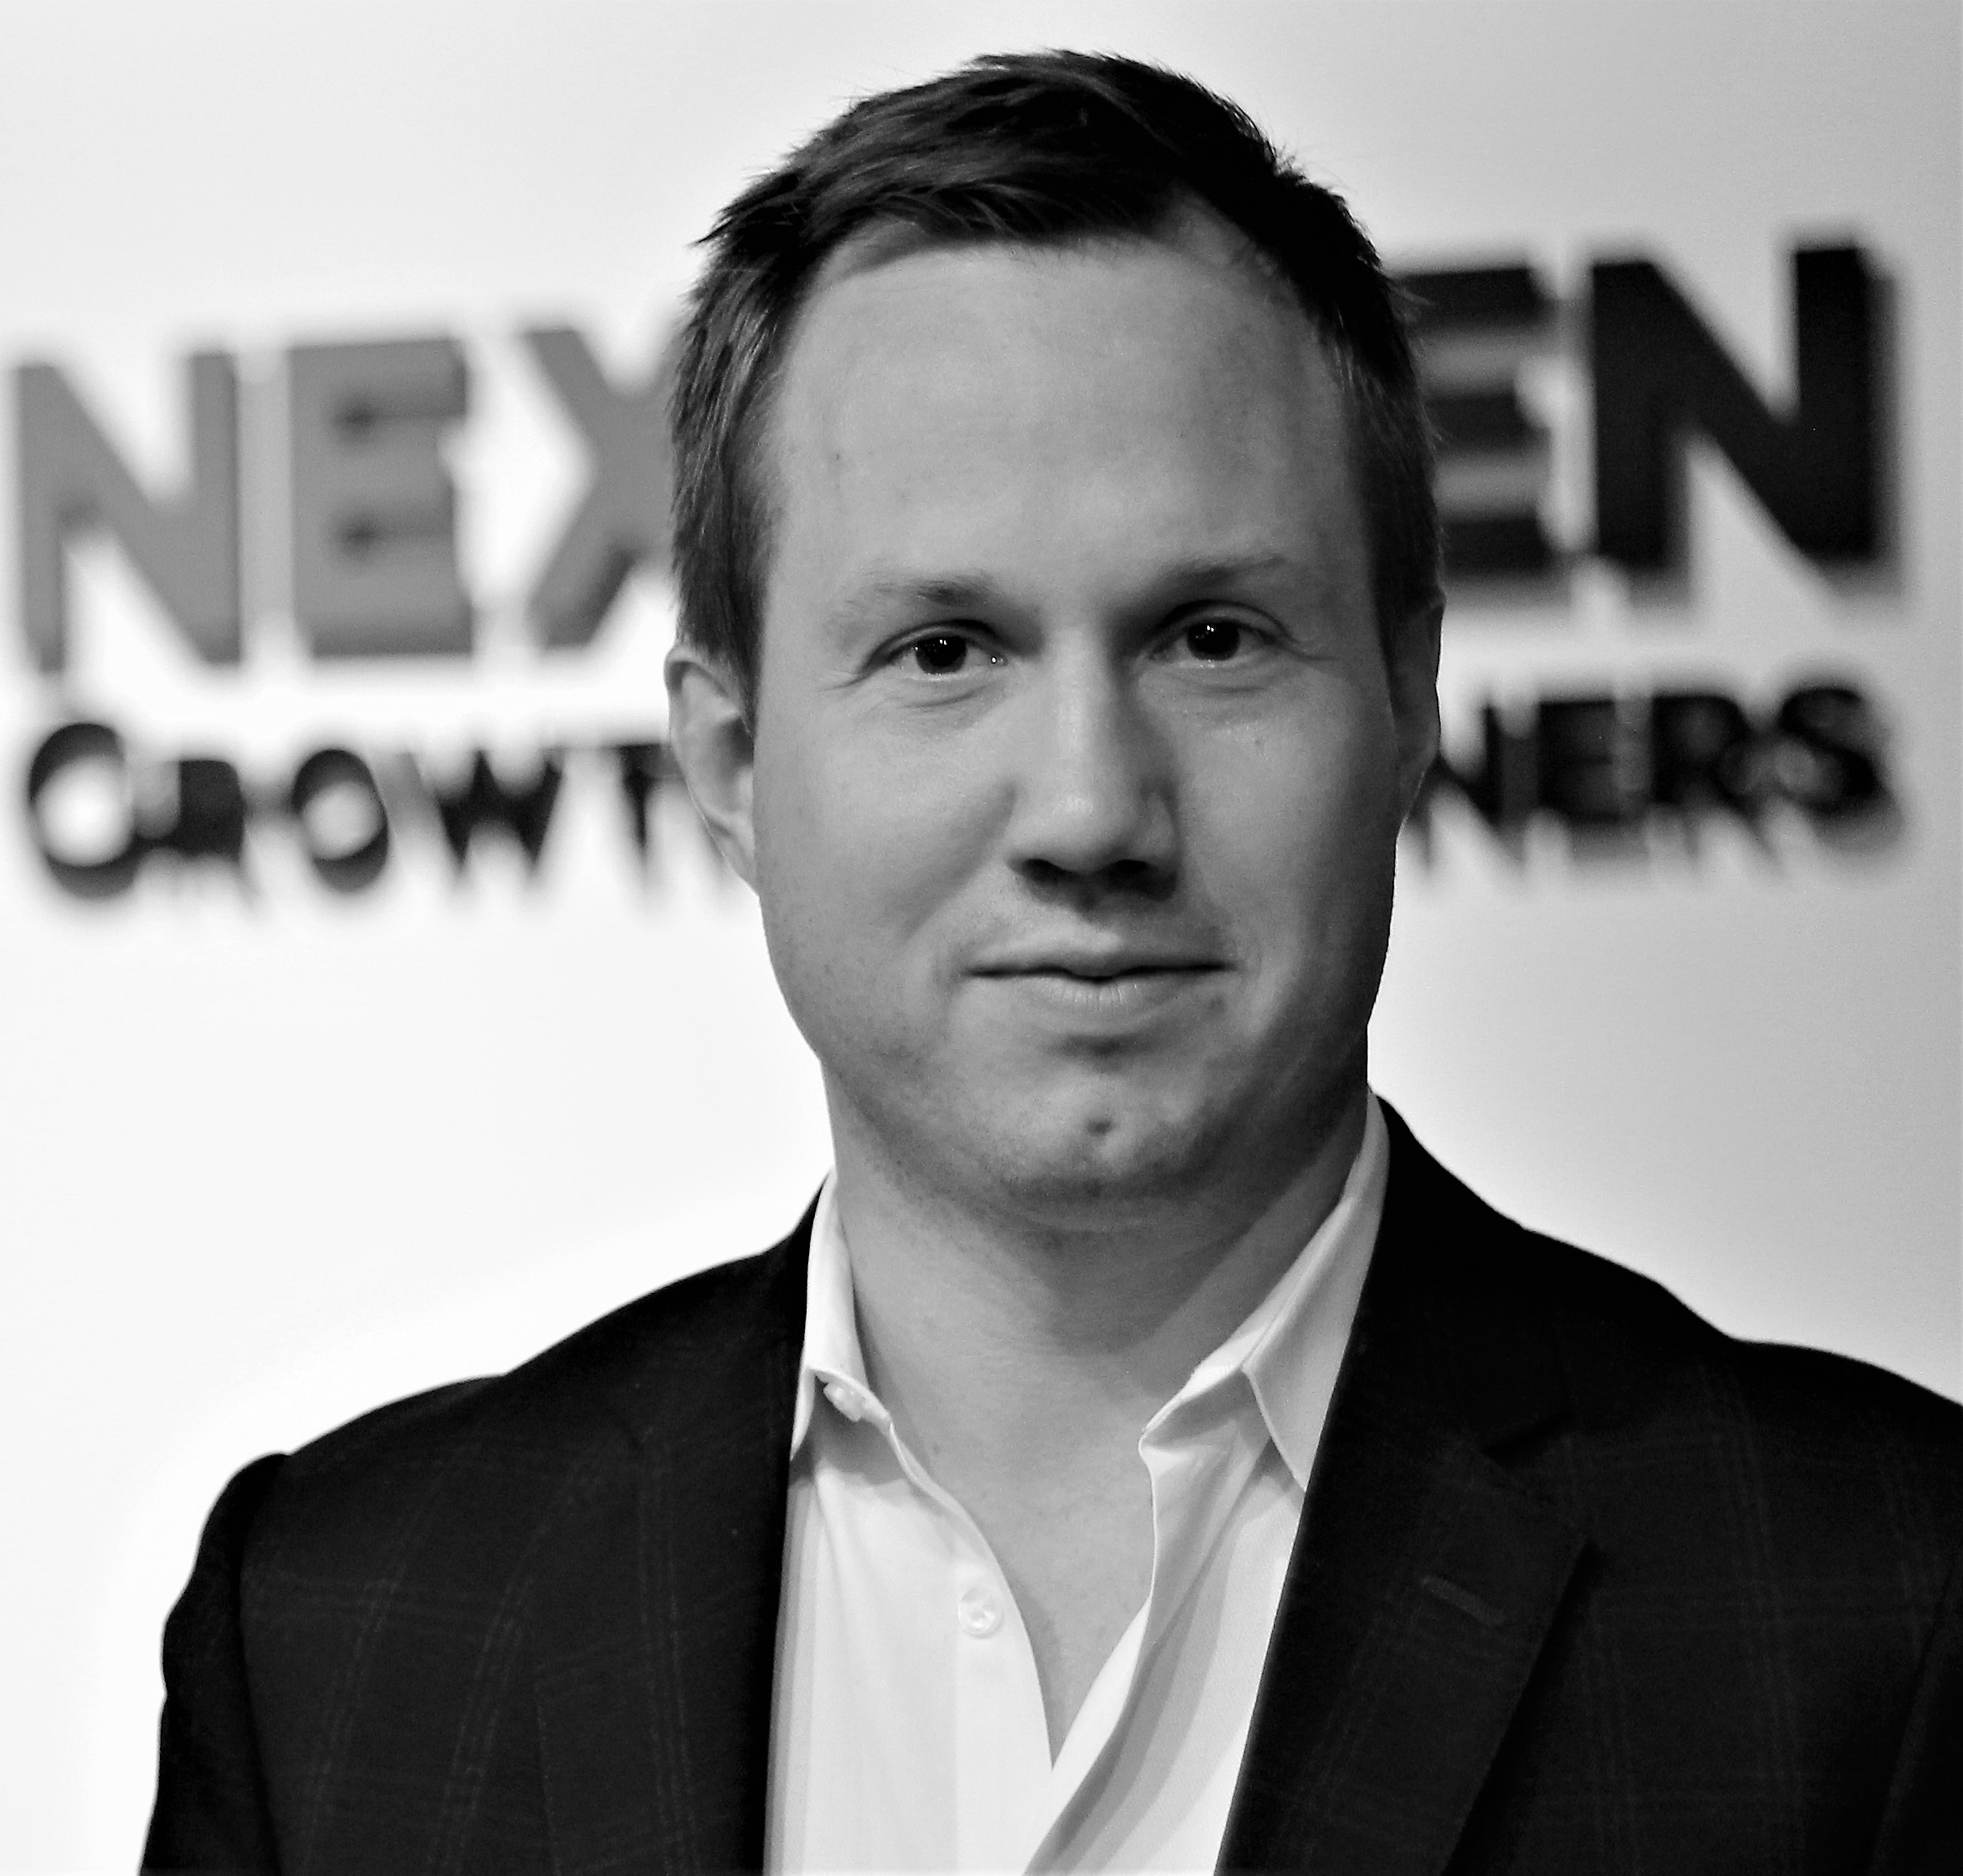 Brian O'Connor  Managing Partner boconnor@nextgengp.com